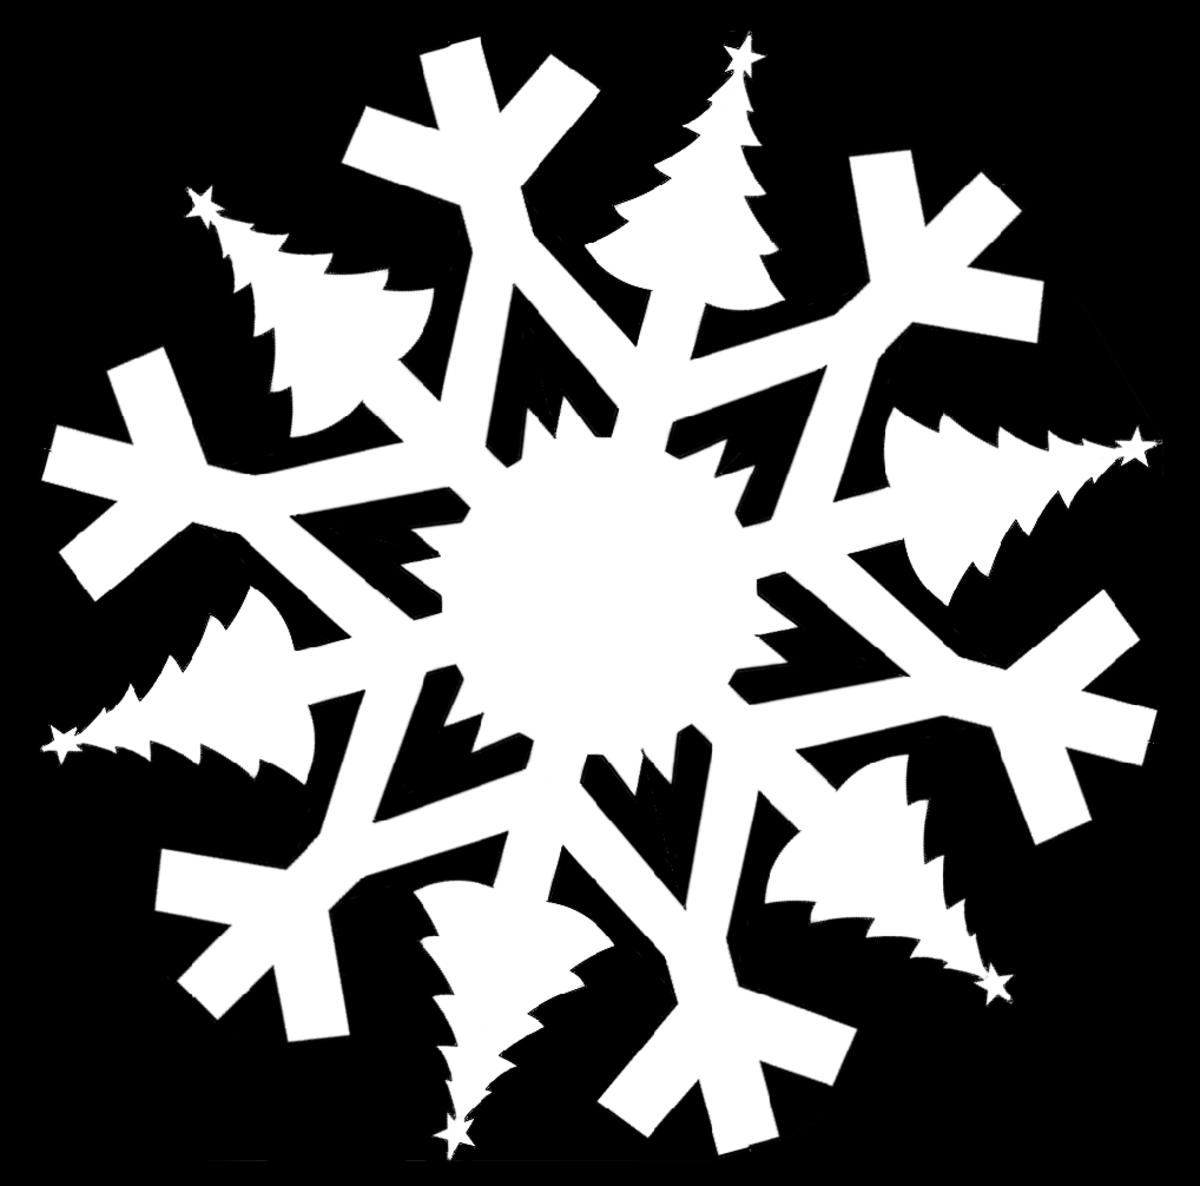 5 Christmas Themed Paper Snowflake Templates